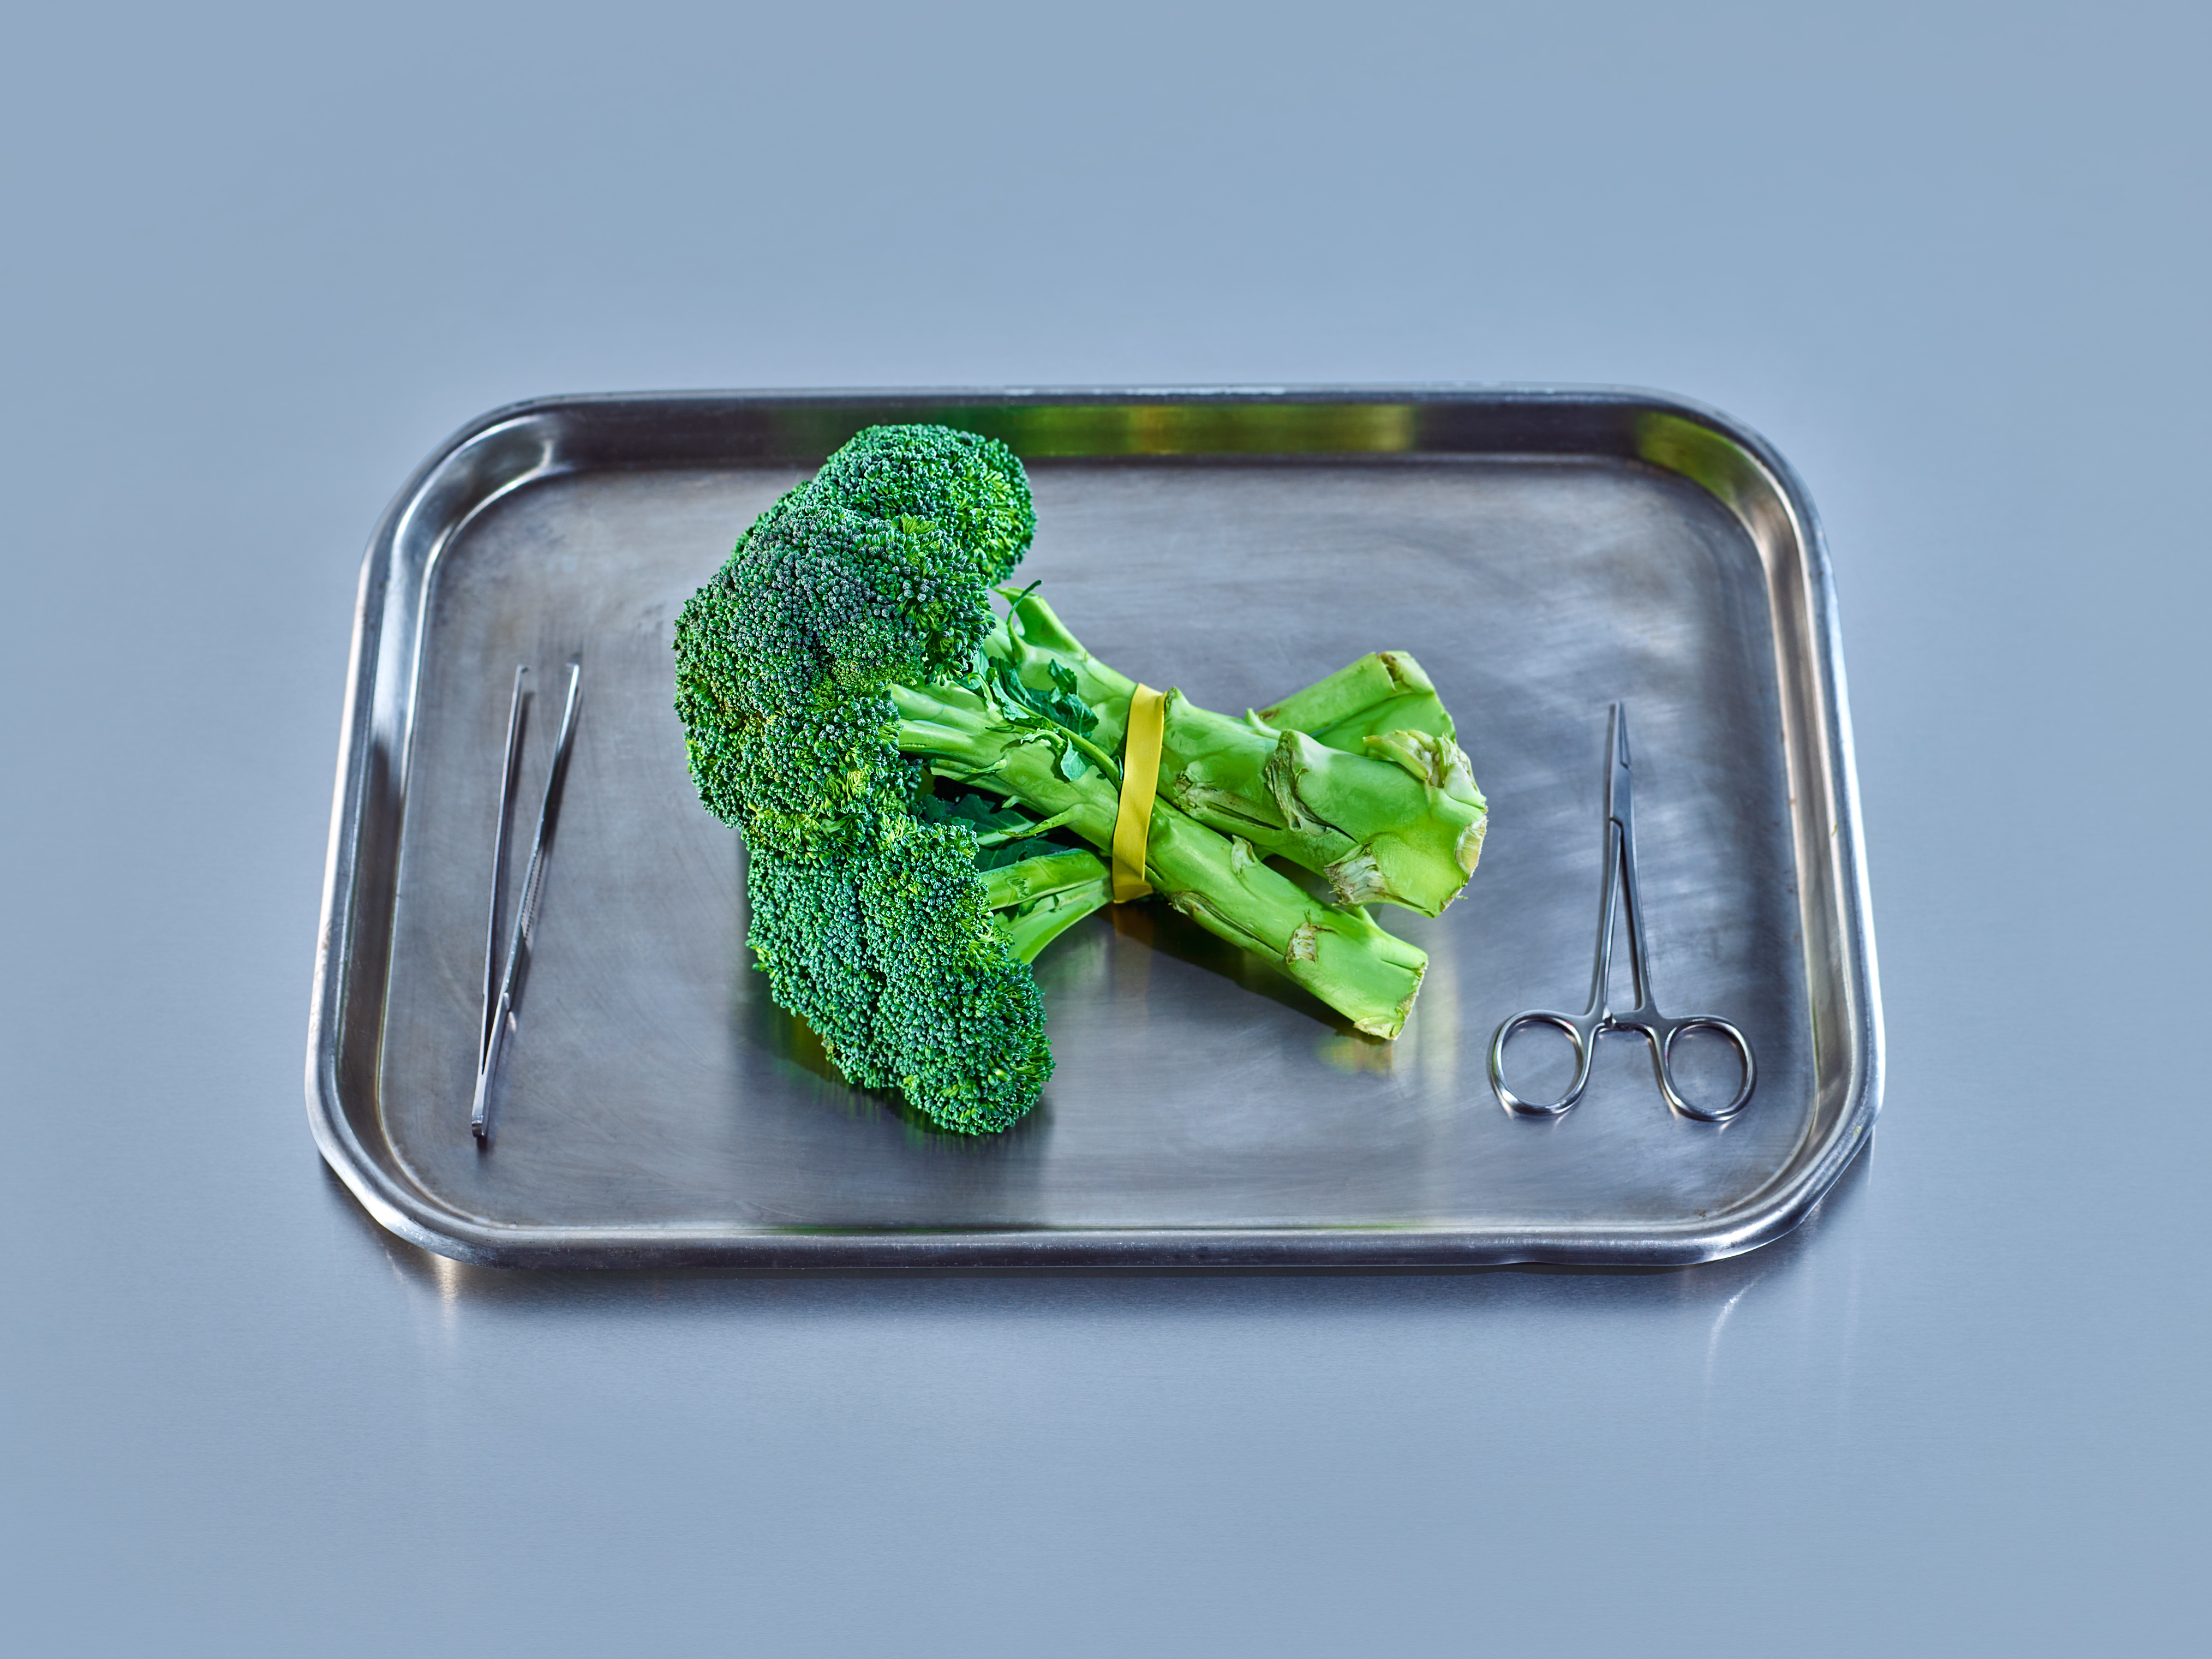 BROCCOLI | Loaded with glucosino­lates. Glucosinolates convert to compounds that can slow breast cancer cells from growing in the lab